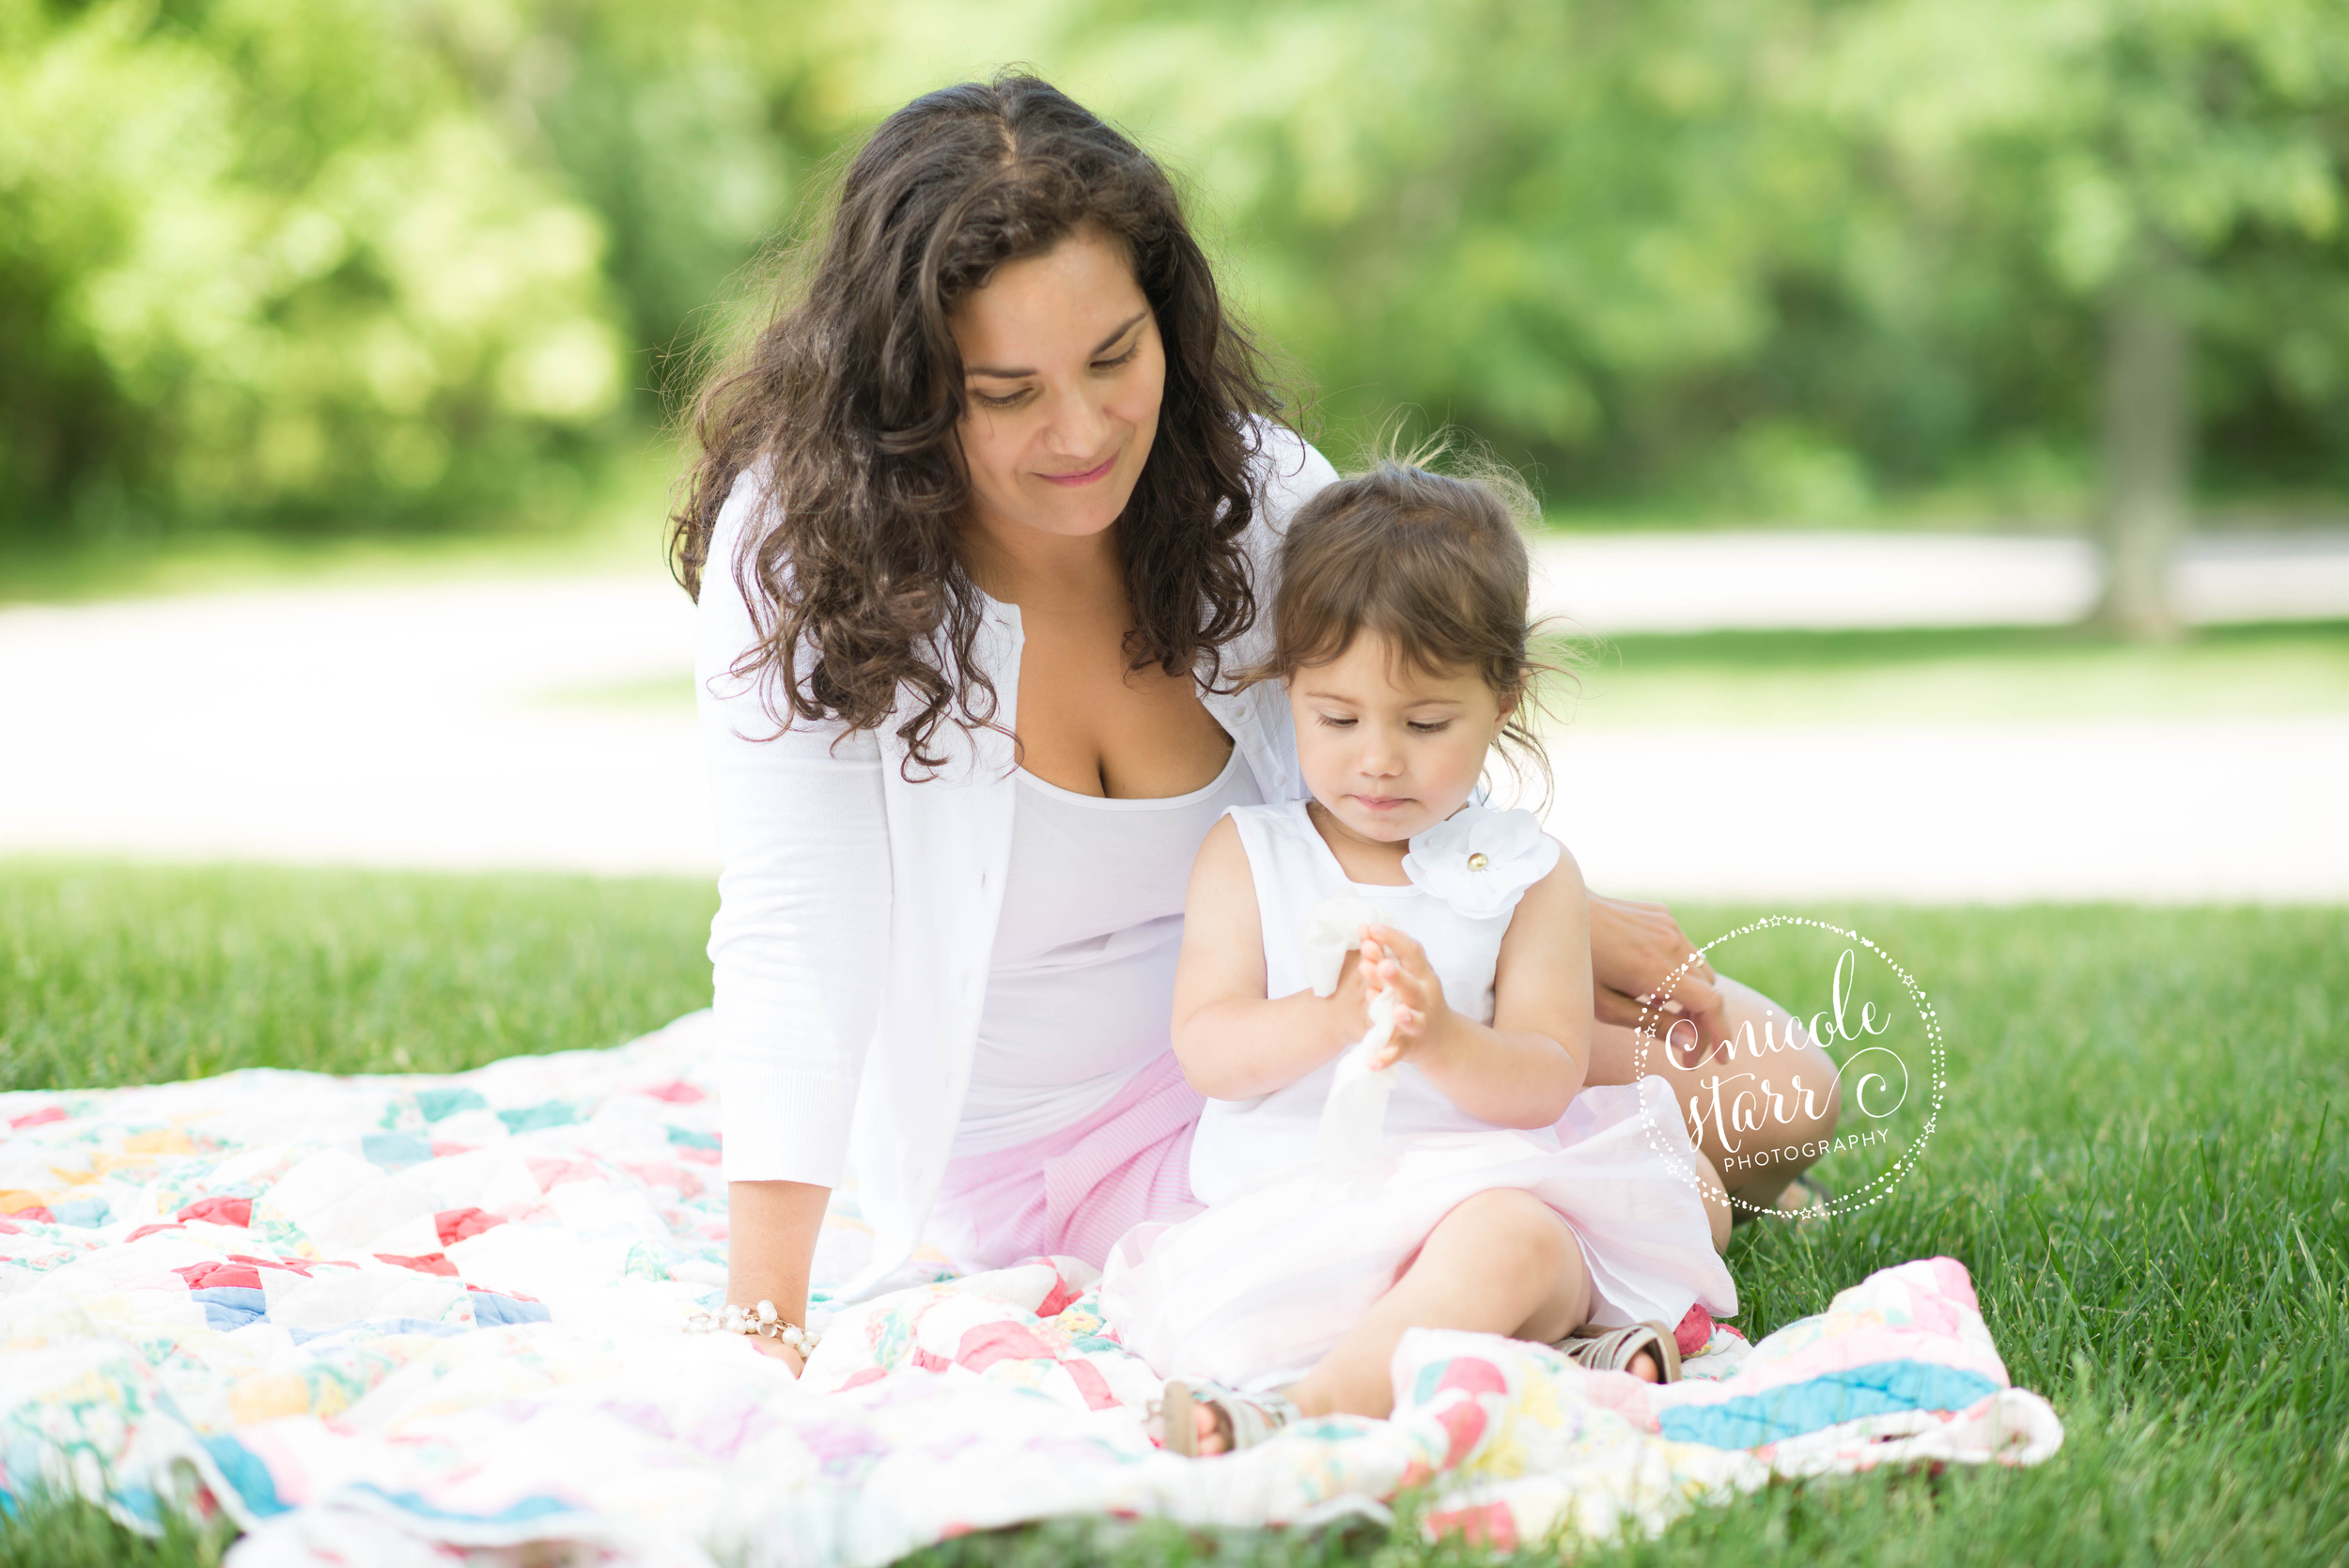 mommy and baby girl in a park on a quilt reading a book